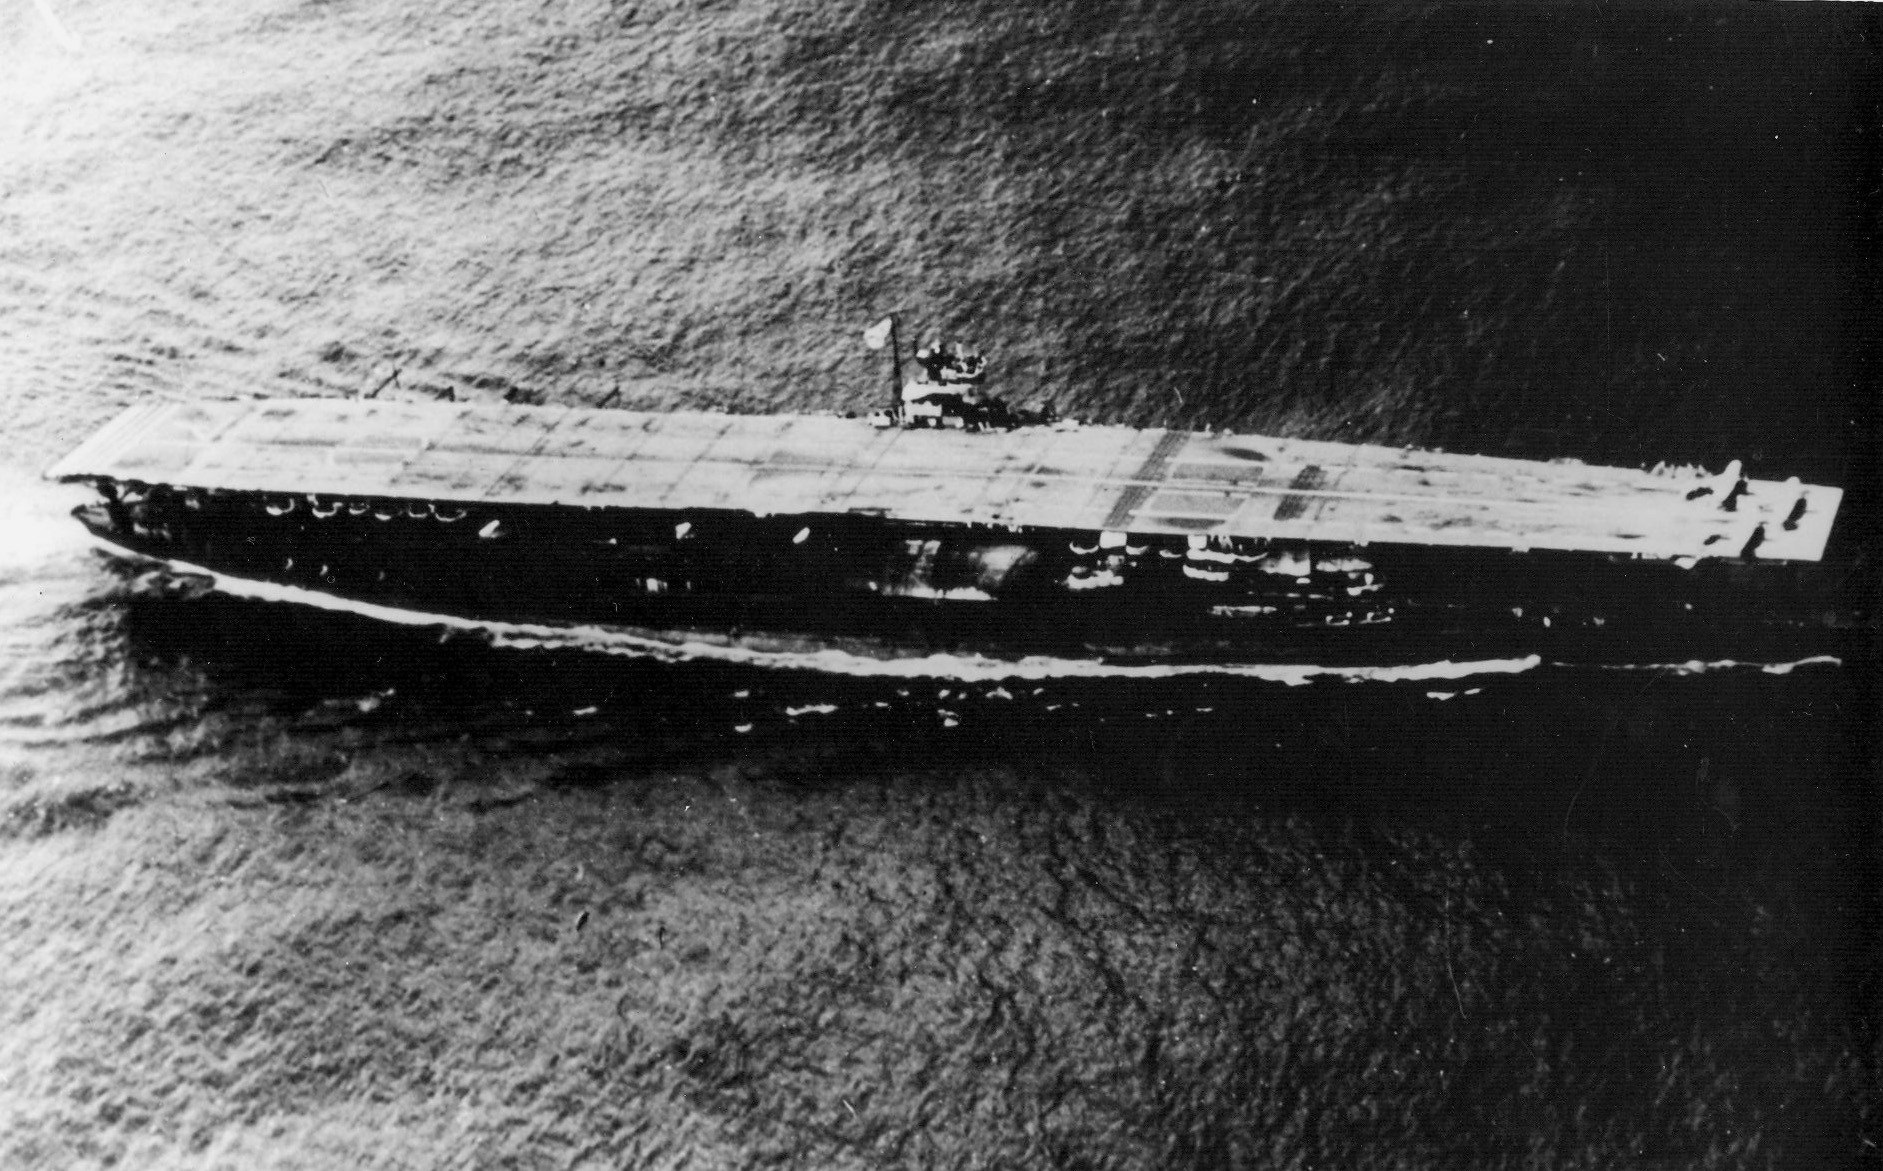 How the U.S. Navy Sank Imperial Japan's Last Monster-Sized Aircraft